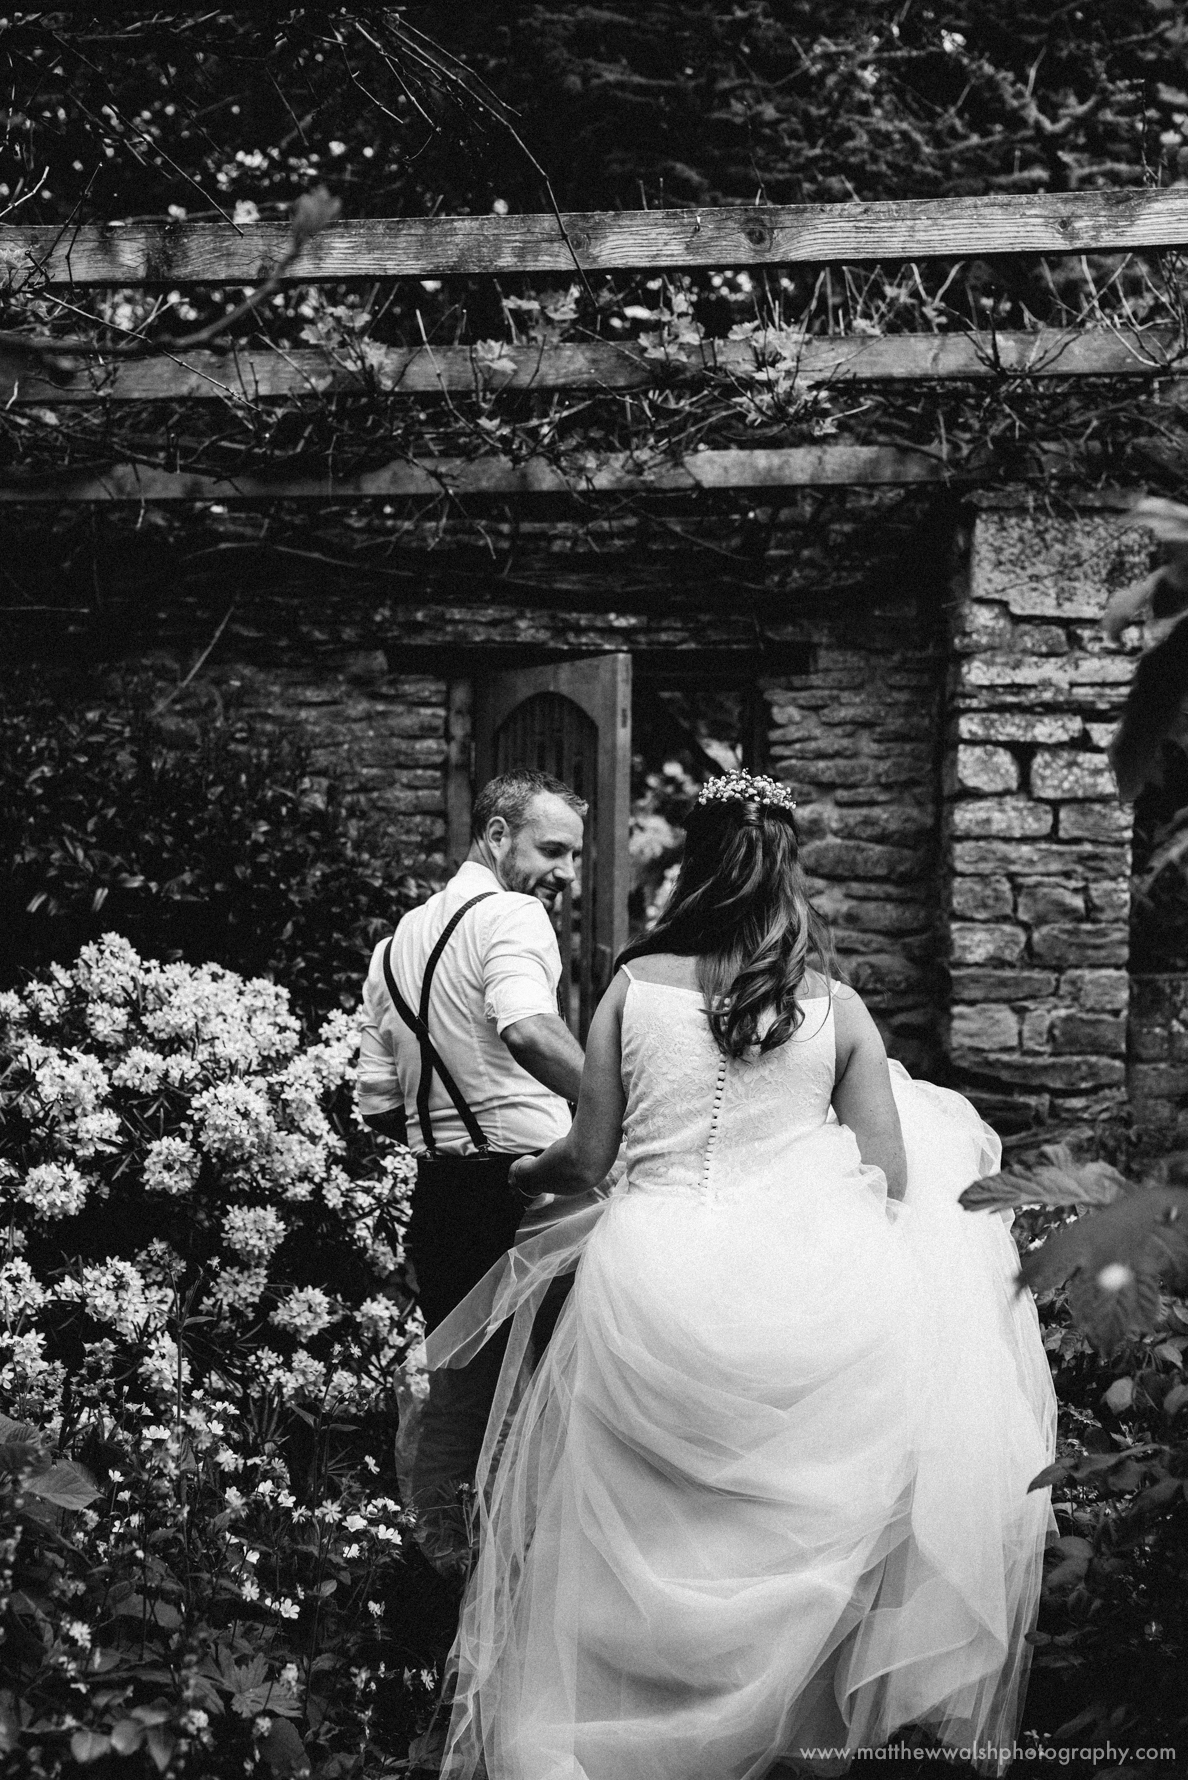 The groom leading the bride through the gardens at Dewsall court, Hereford, Herefordshire